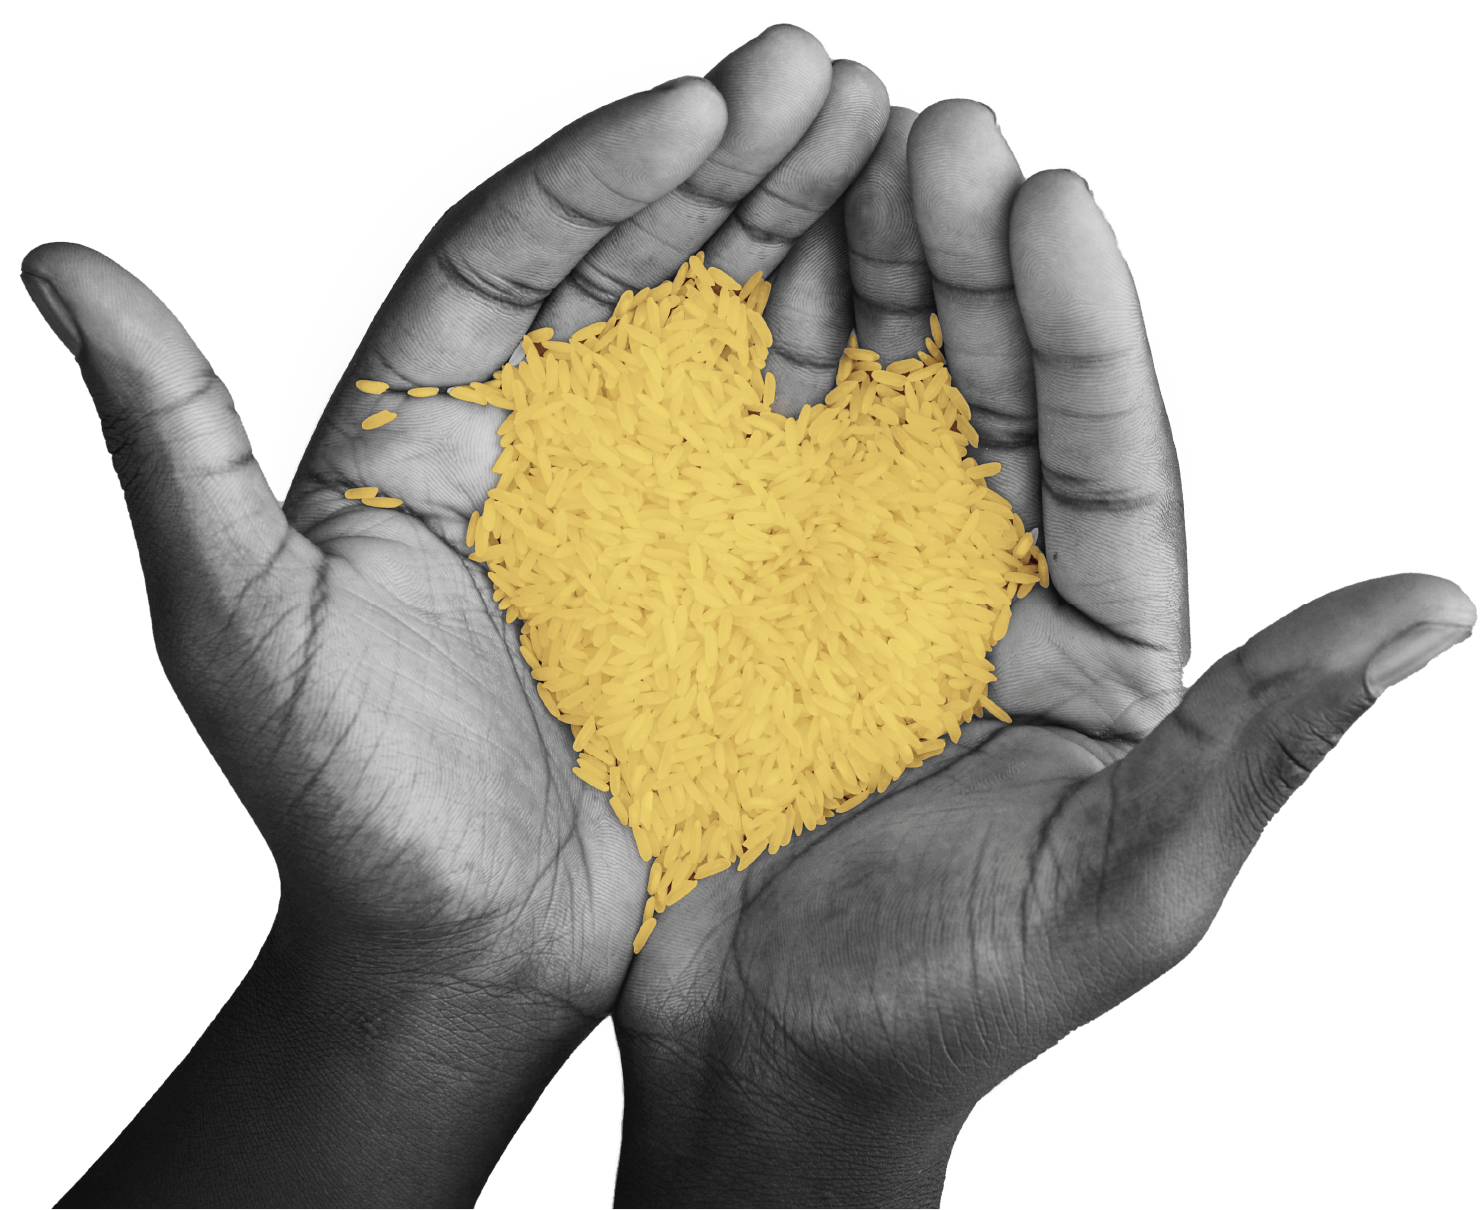 Hands holding yellow rice